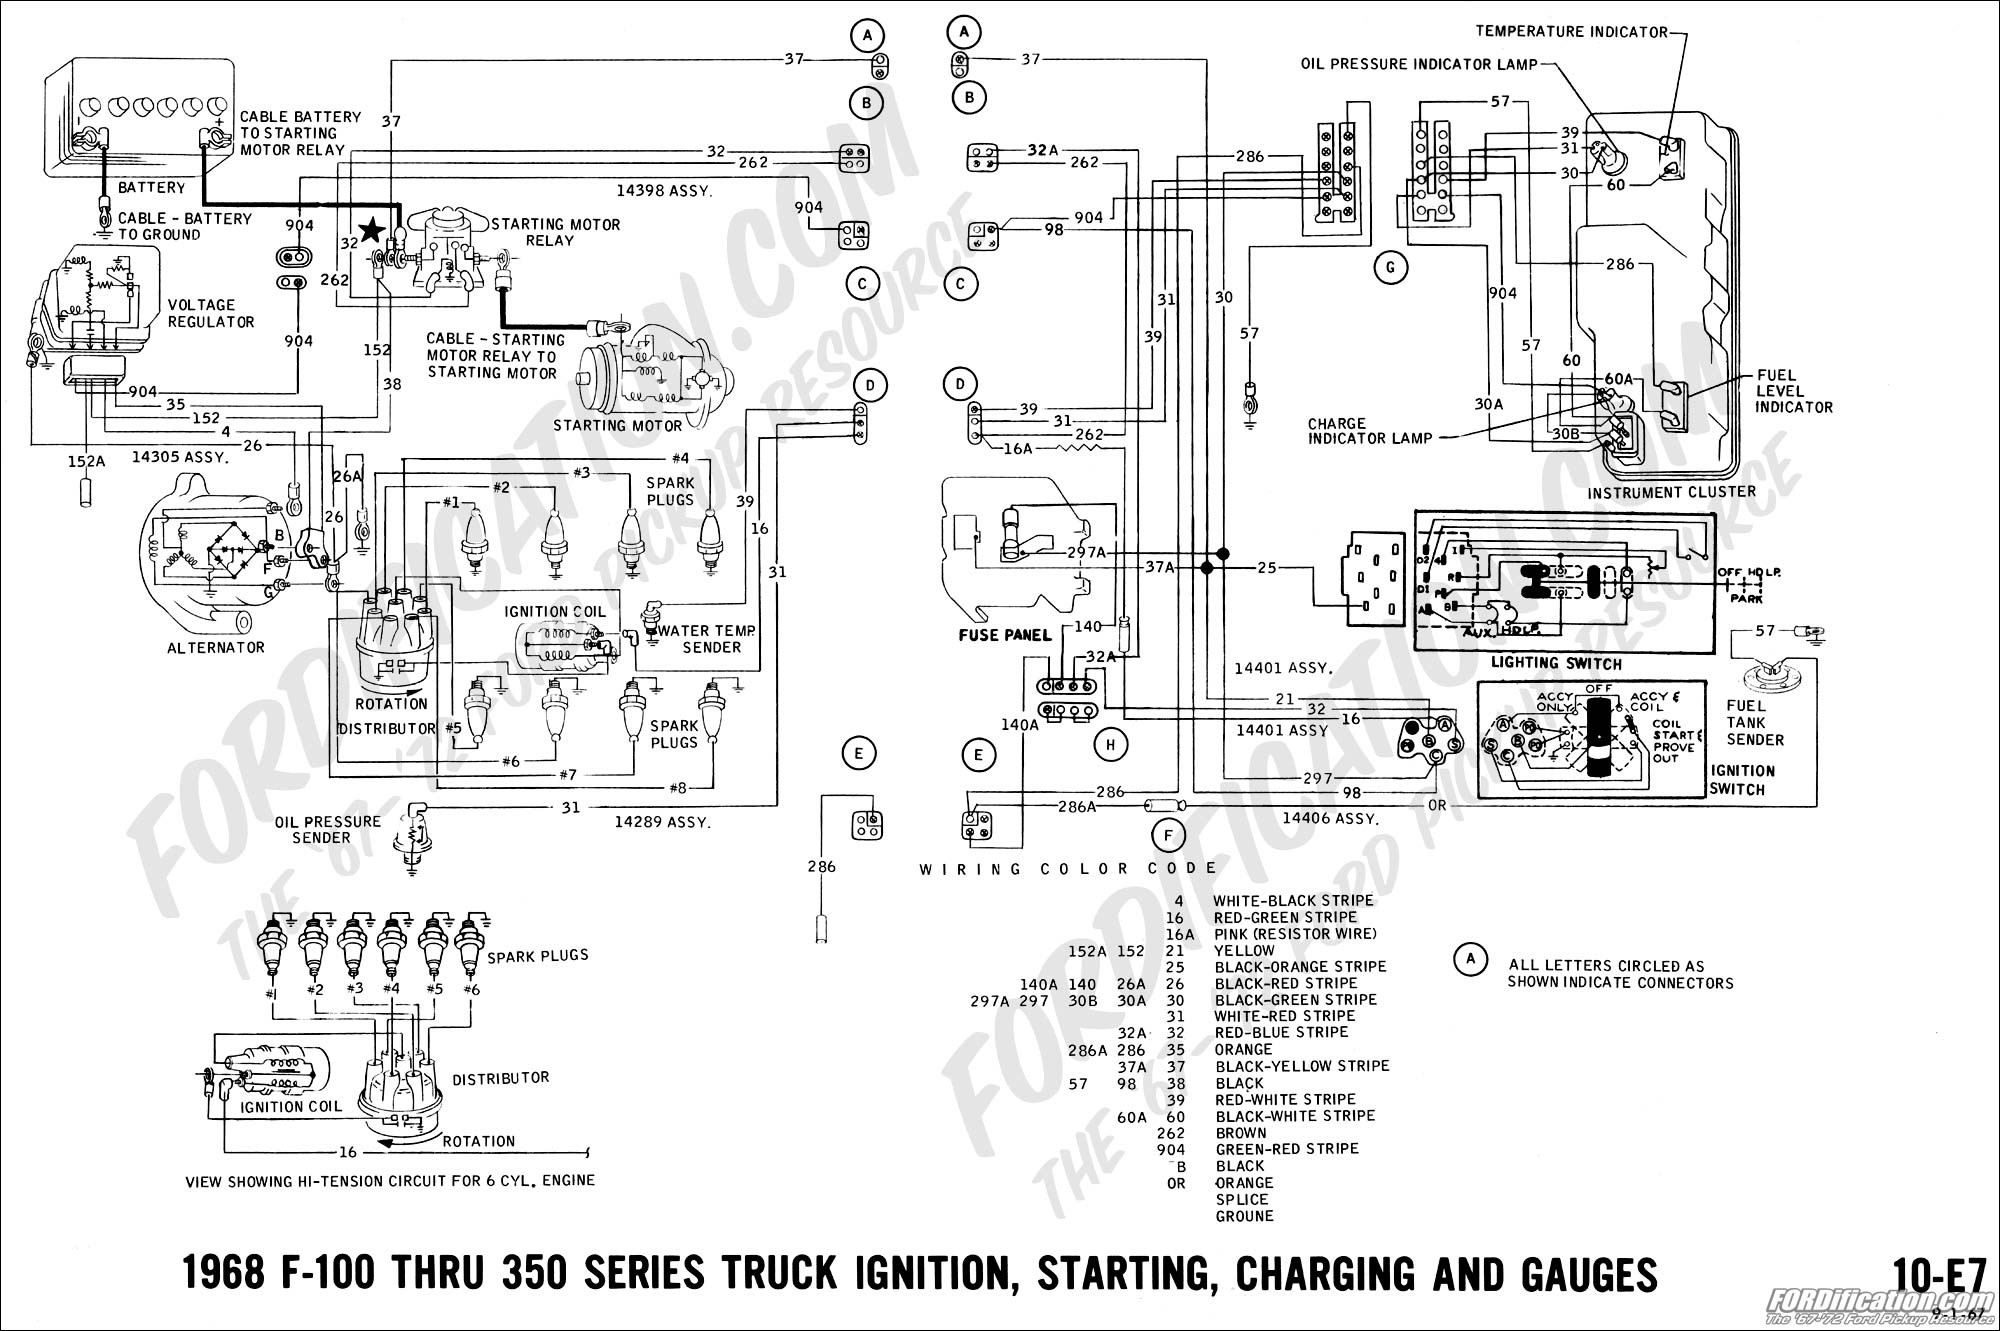 1995 Ford Taurus Engine Diagram Wiring Library 95 Mustang Wiper Motor Exhaust System